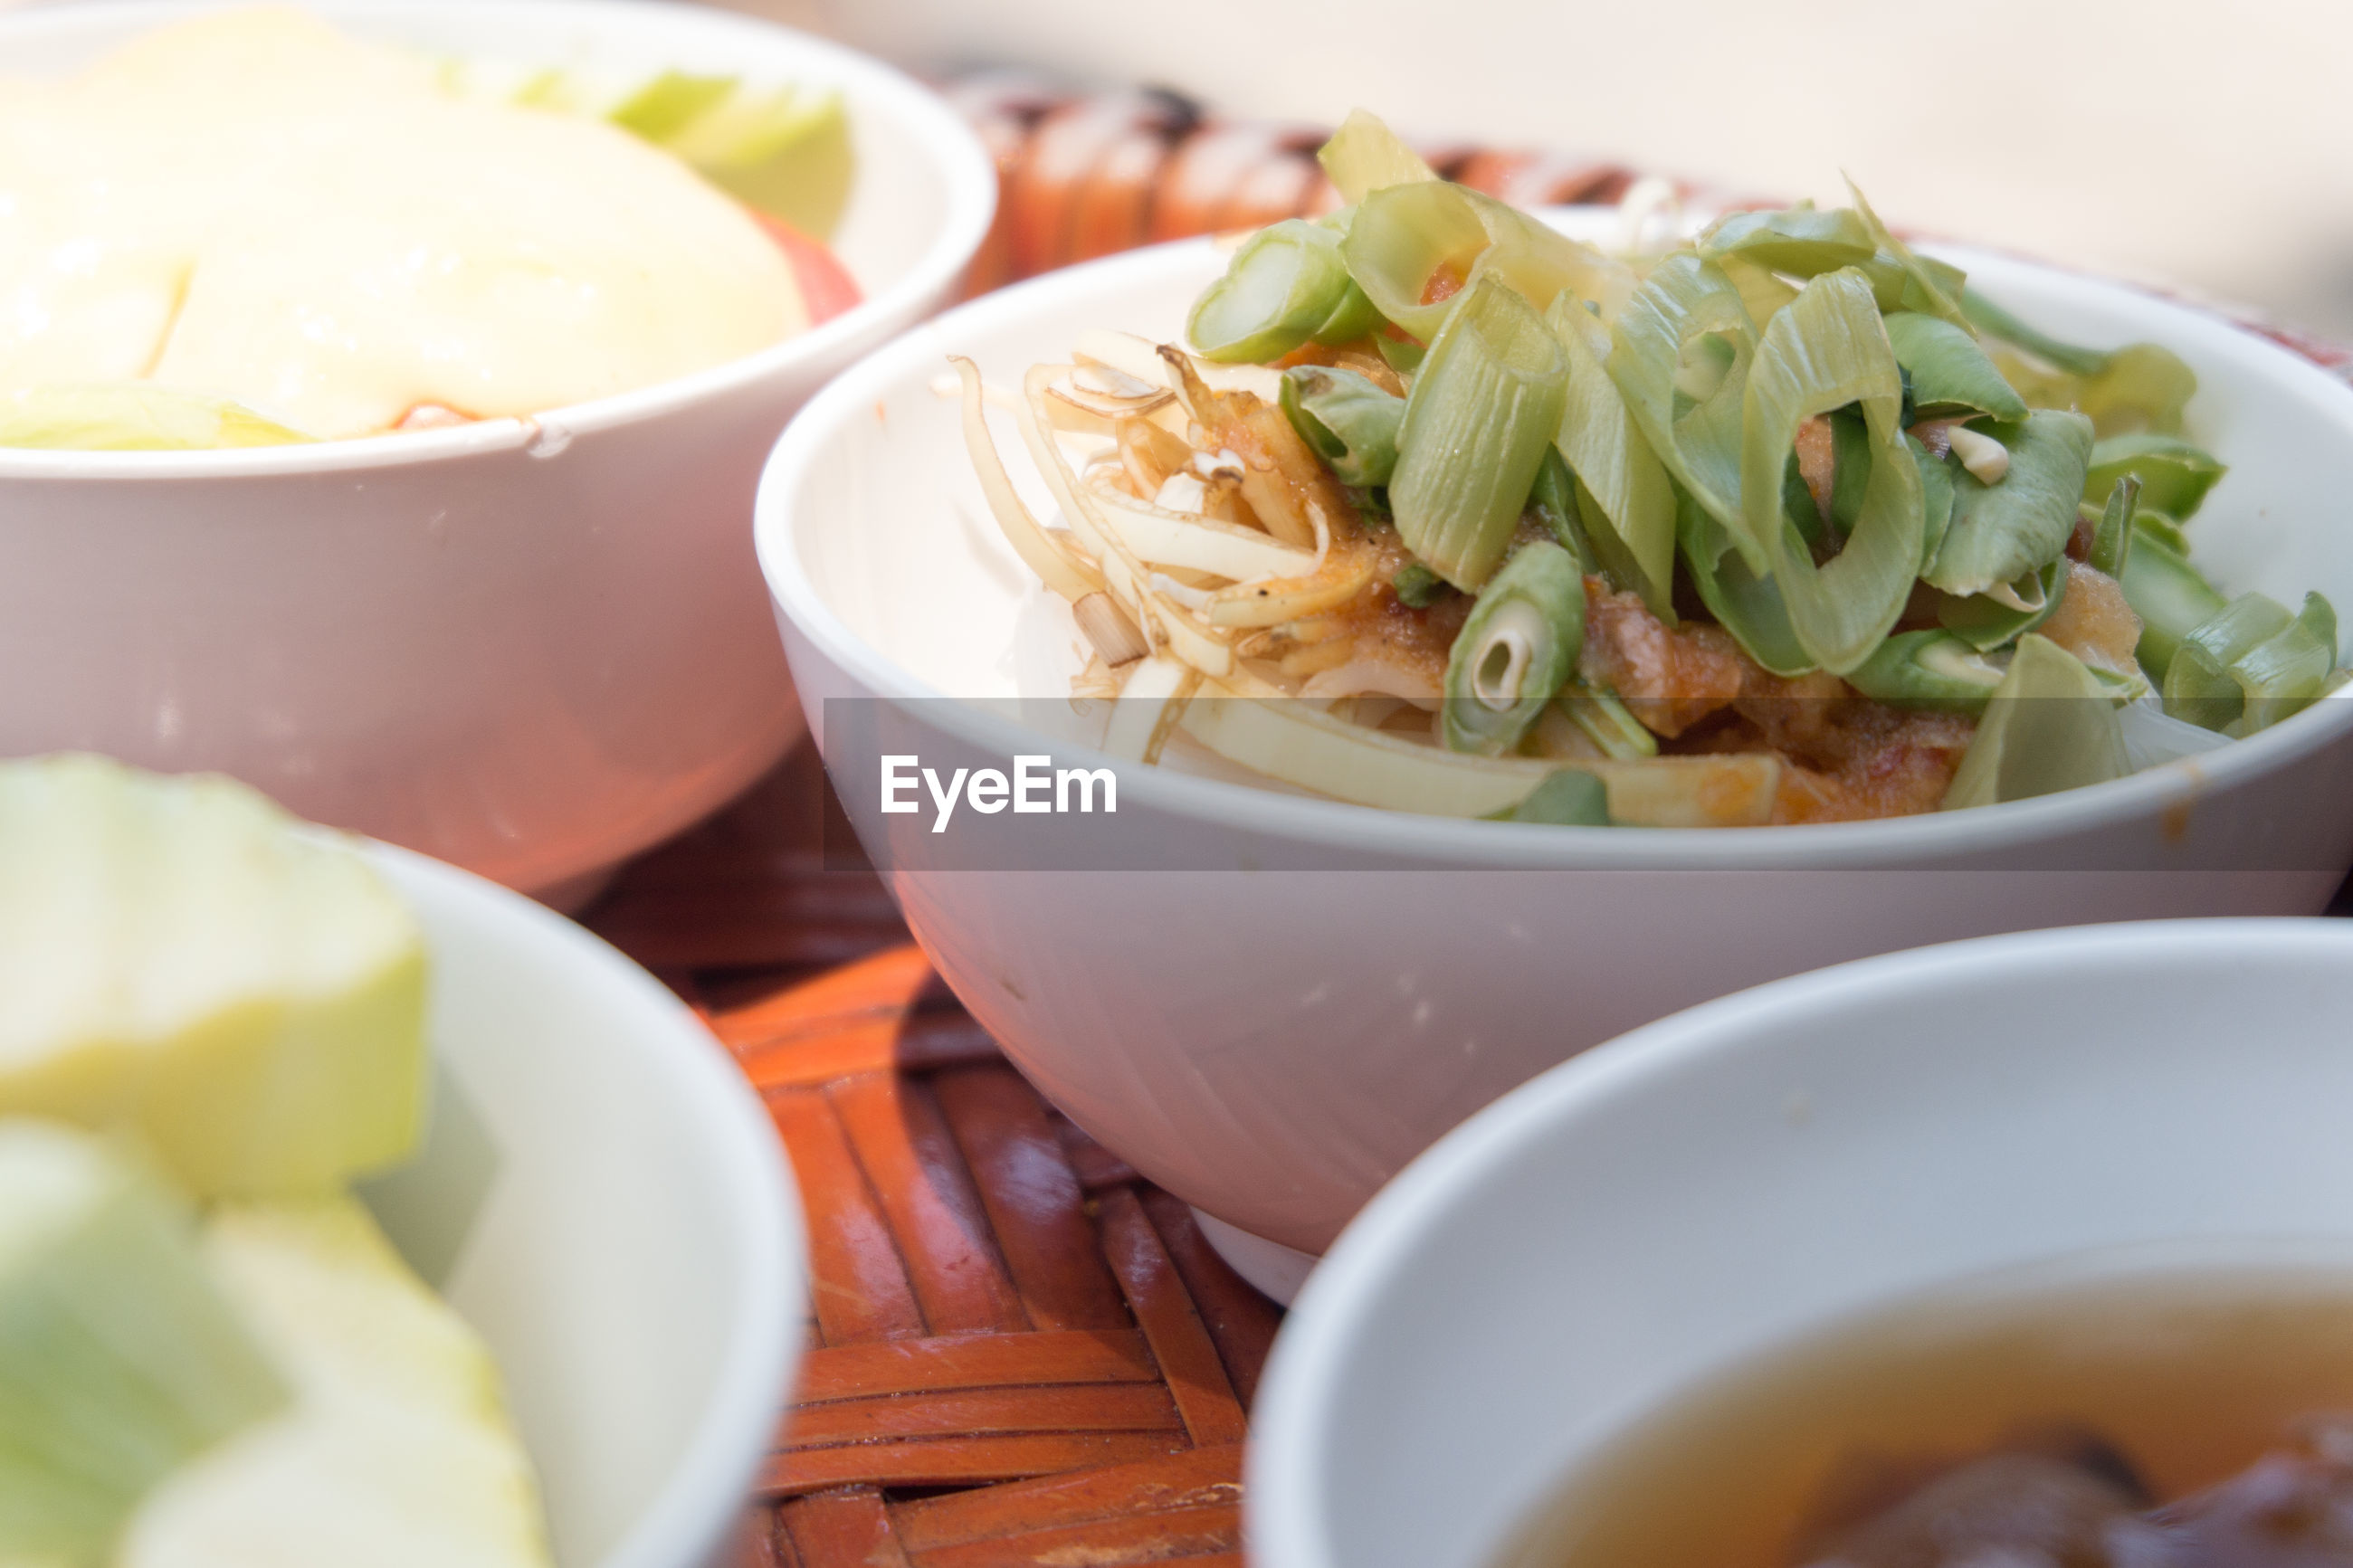 Close-up of salad and soup in bowls on table